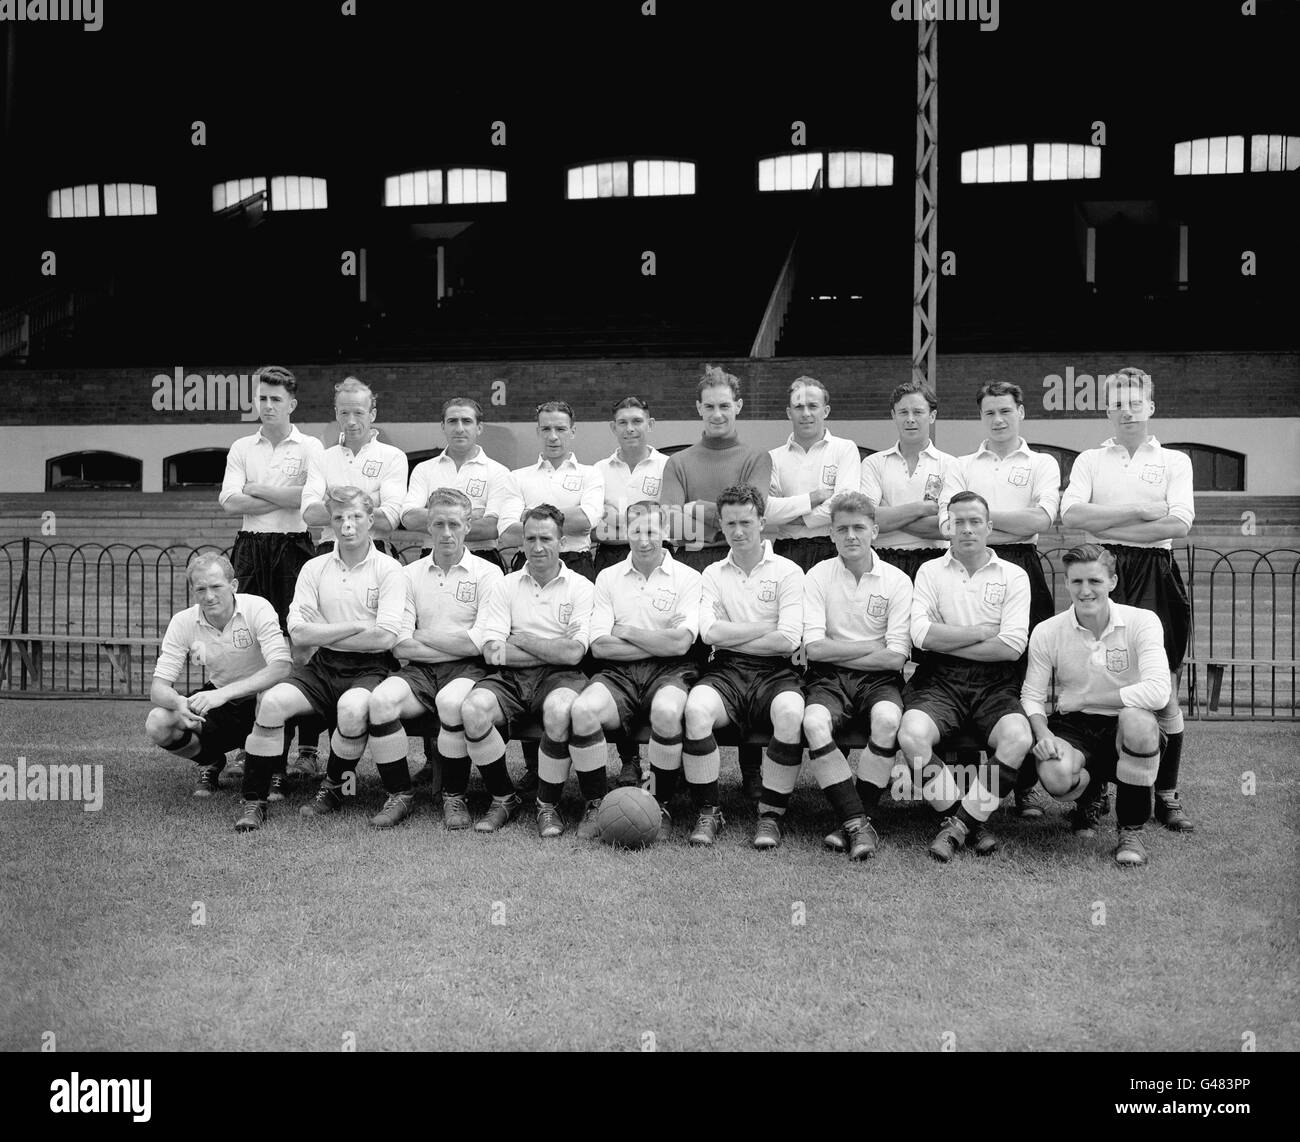 Soccer - League Division Two - Fulham Photocall - Craven Cottage Stock Photo